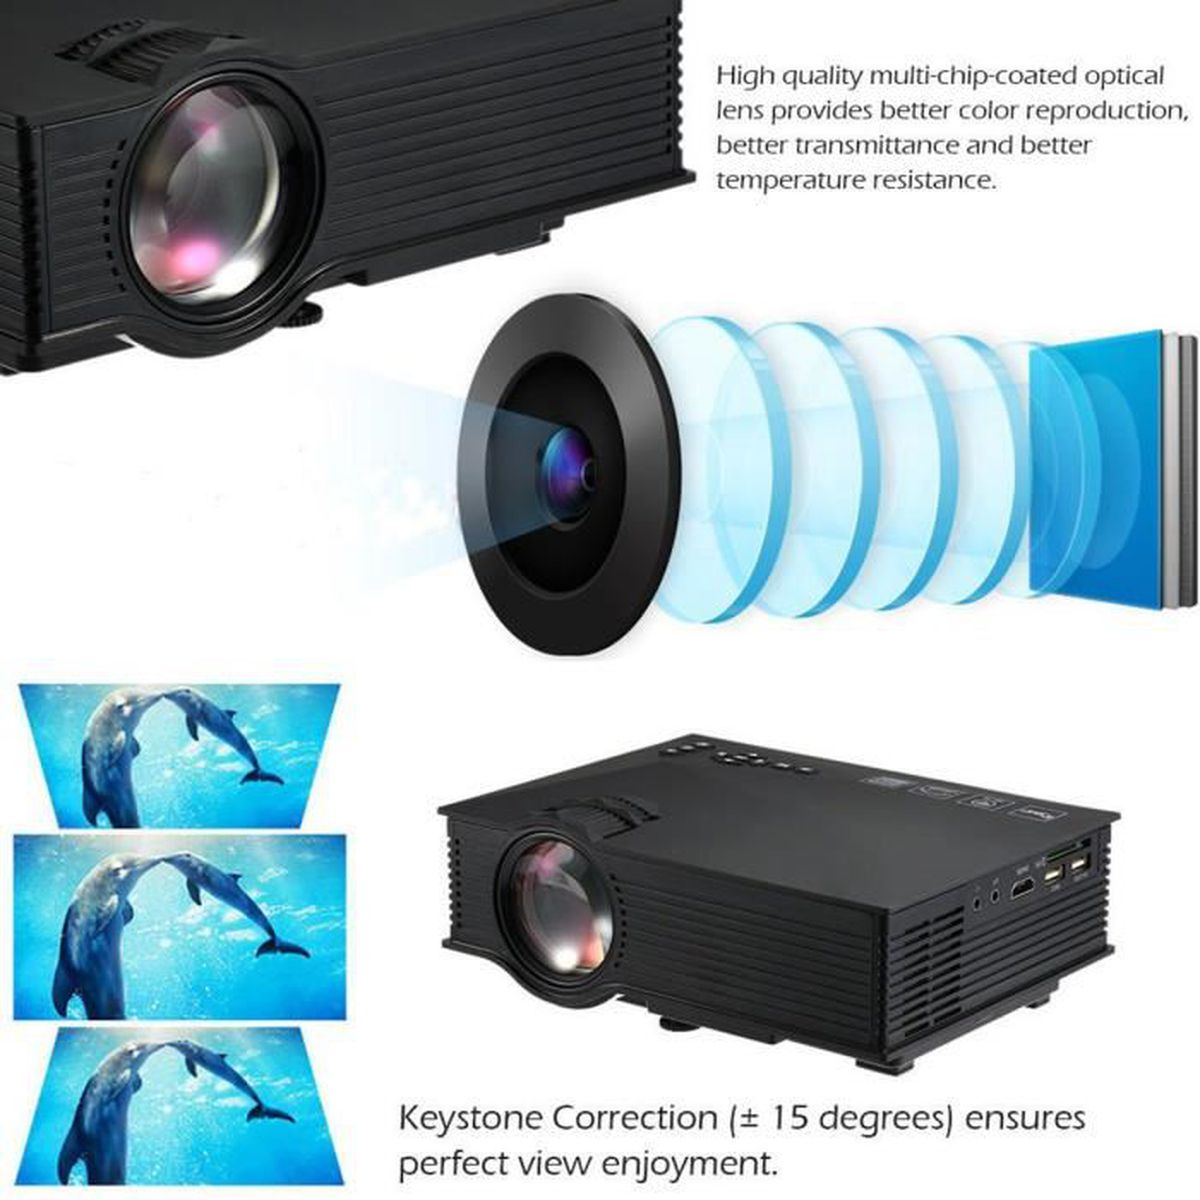 Led Mini 2000 Lumens Projecteur Uc40 Vidoprojecteur Multimdia Unic Uc46 Portable Projector Full Hd 1080p Support Red And Blue 3d Effect With Wifi Connection Vidoprojecte Nom Conduit Hdmi